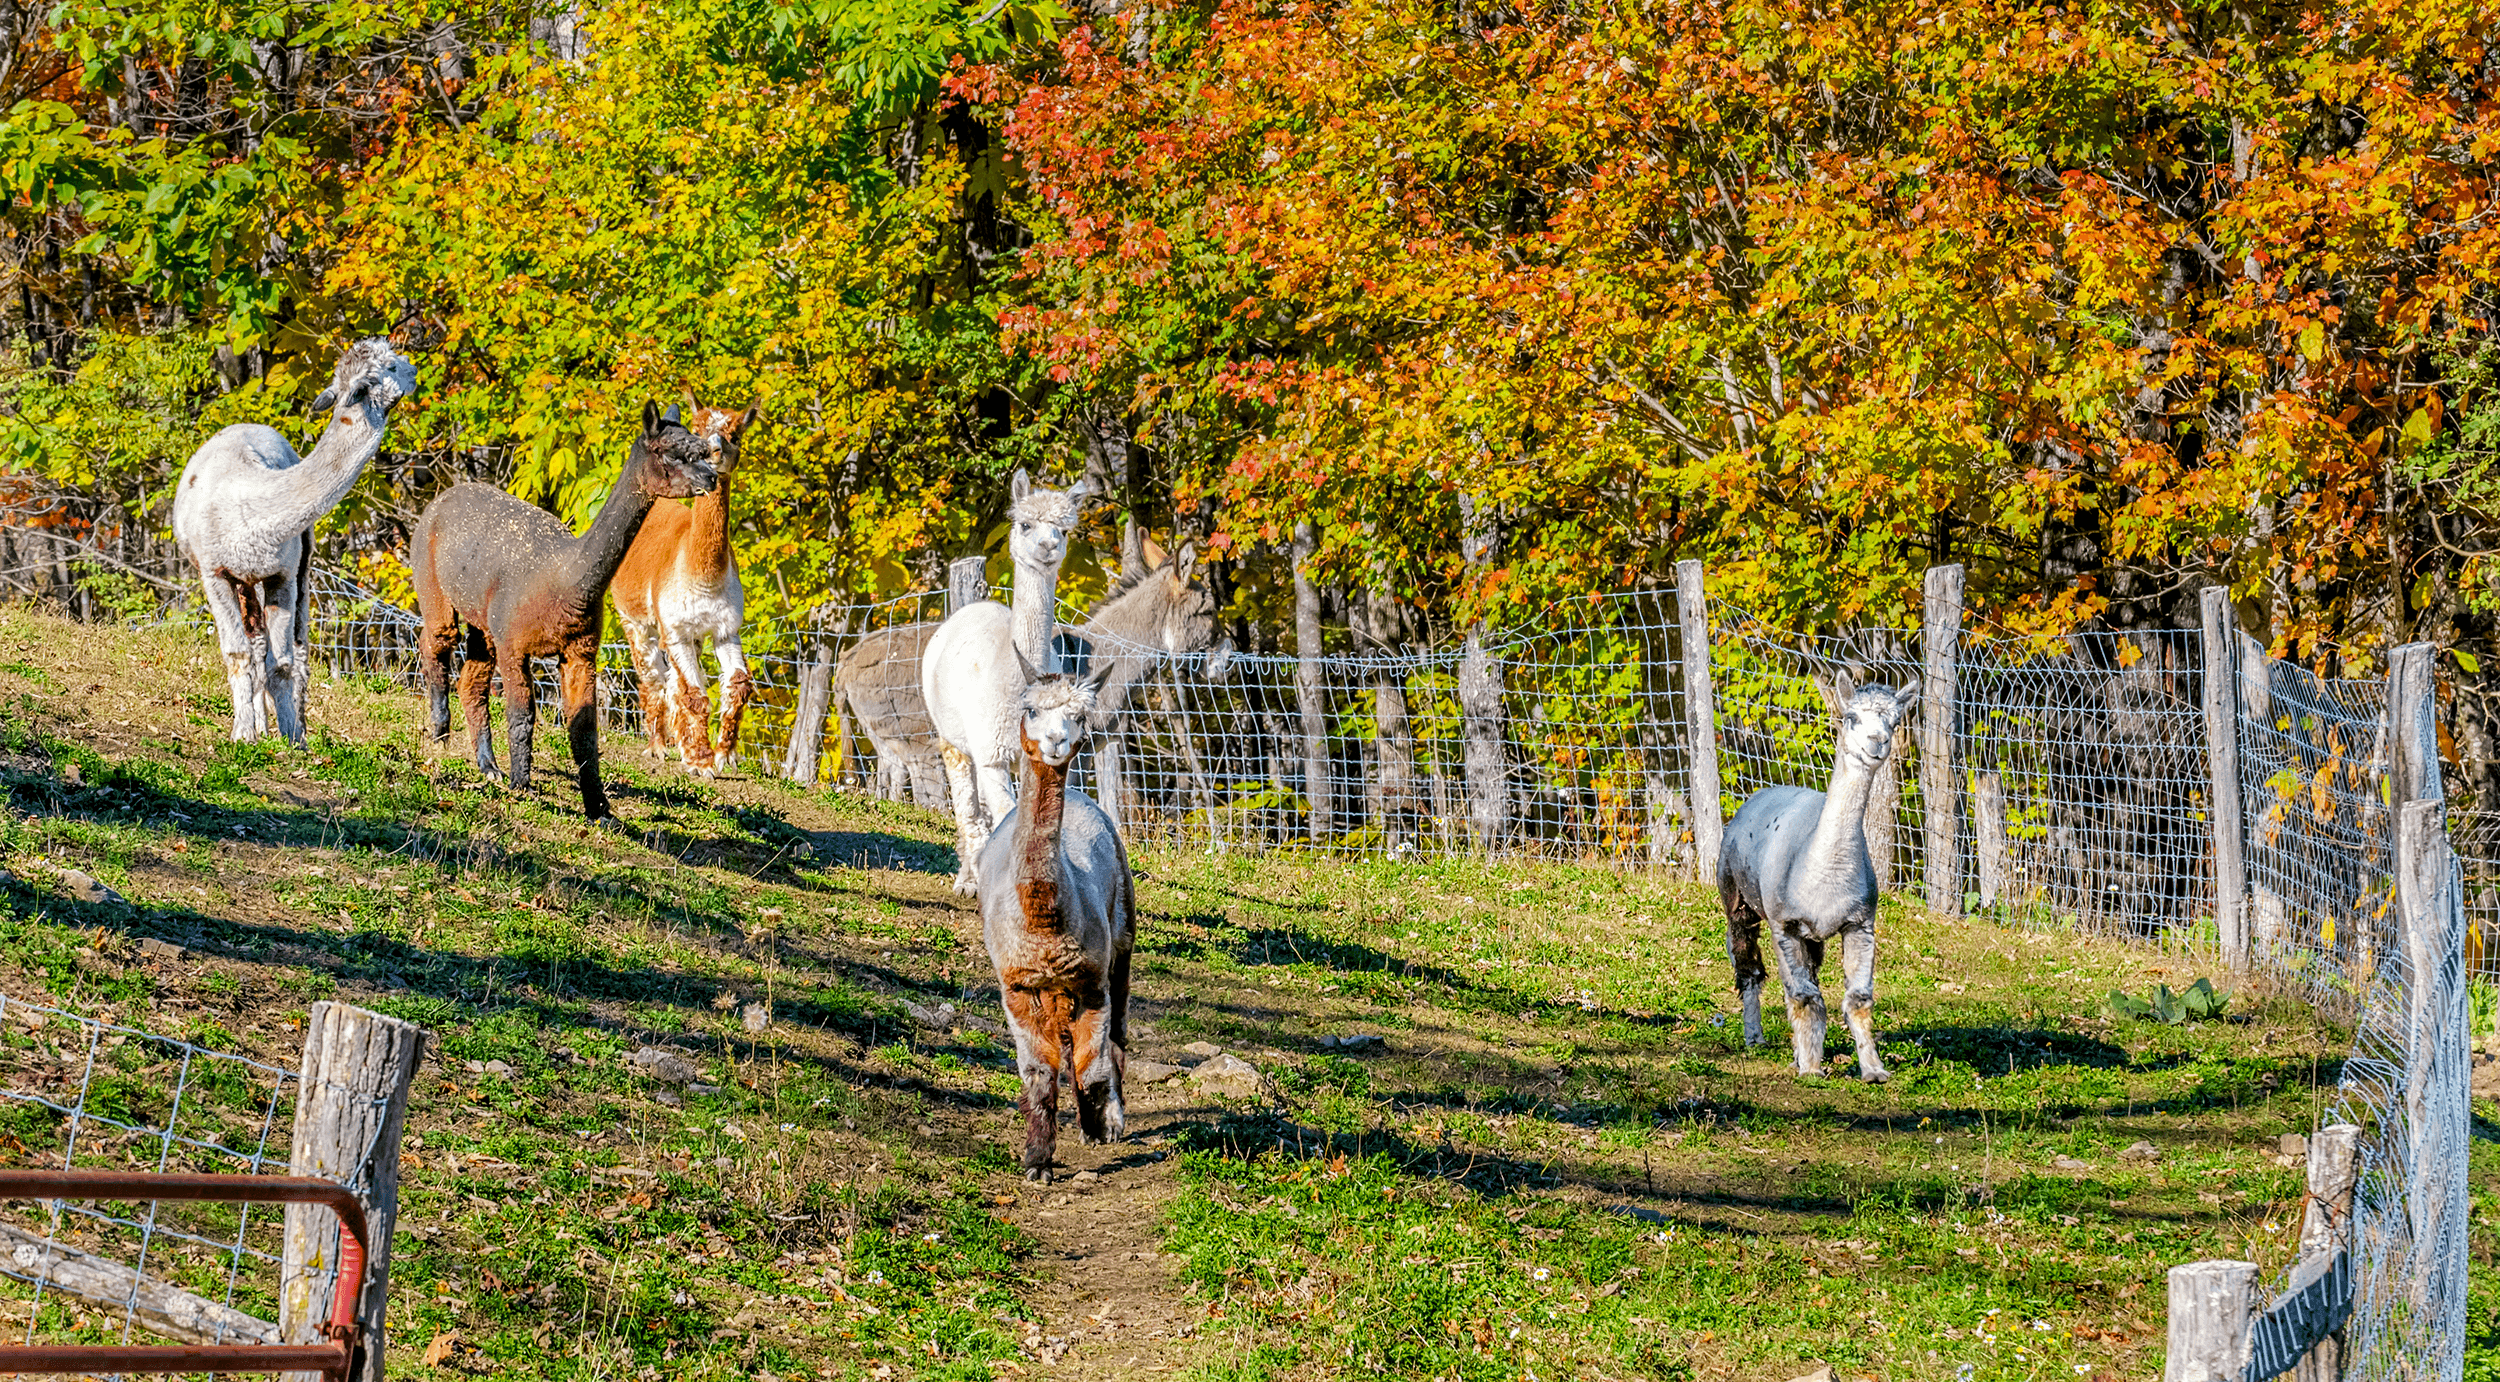 The second herd of alpacas is making its way back to the lower barn on this perfect fall afternoon.